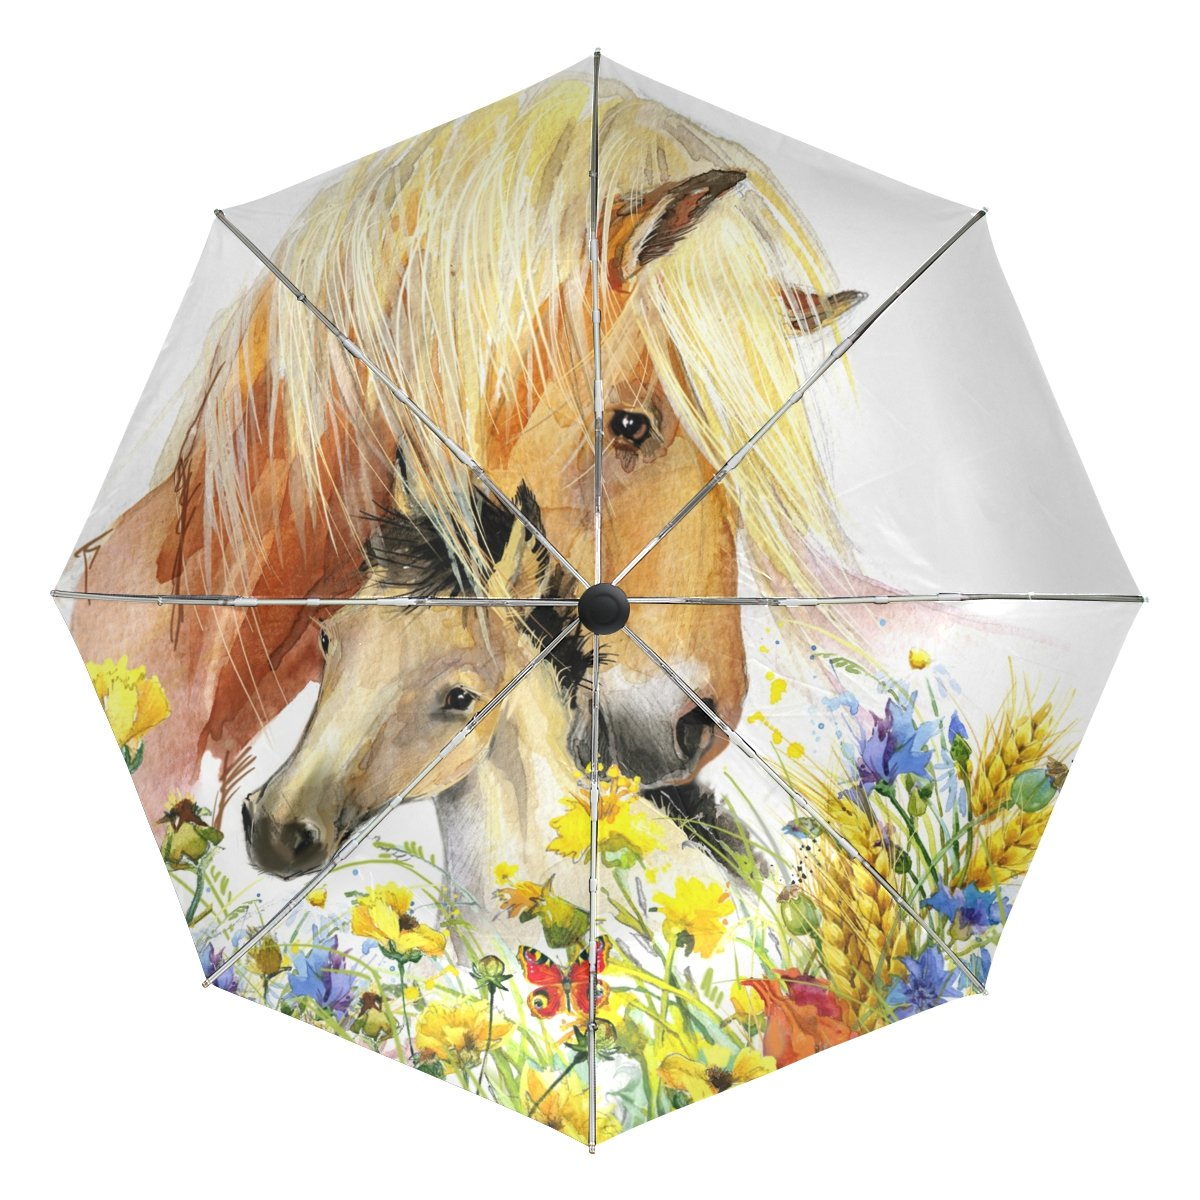 BAIHUISHOP Horse Windproof Umbrellas Auto Open Close 3 Folding Golf Strong Durable Compact Travel Umbrella Uv Protection Portable Lightweight Easy Carrying and Slip-Proof Handle   B071HL2TJN